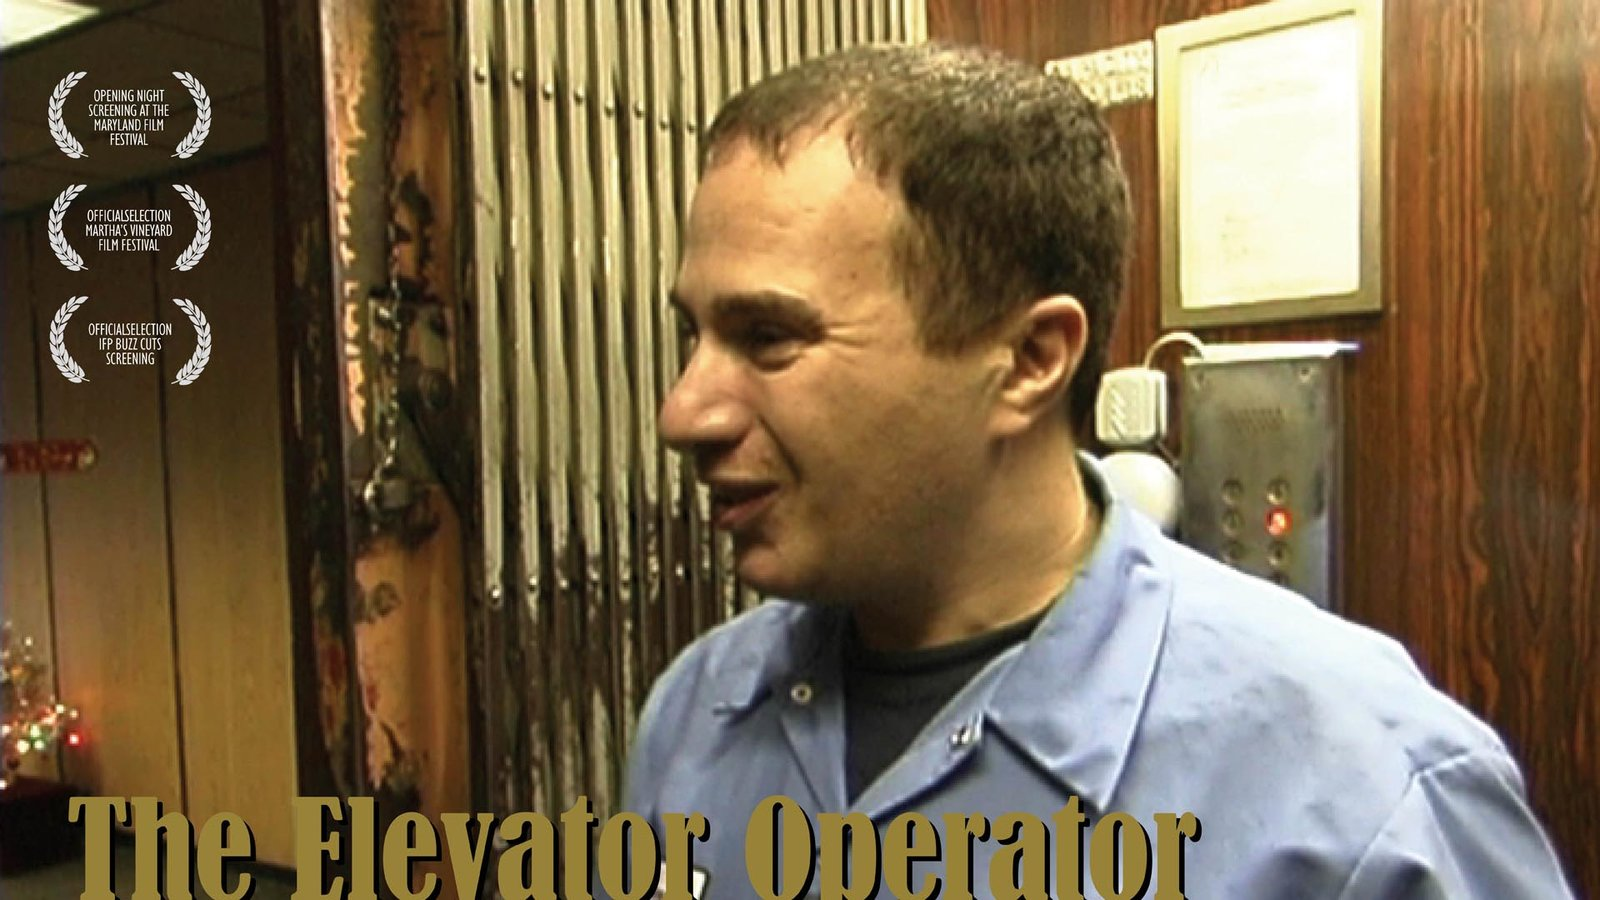 The Elevator Operator - An Immigrant's Experience